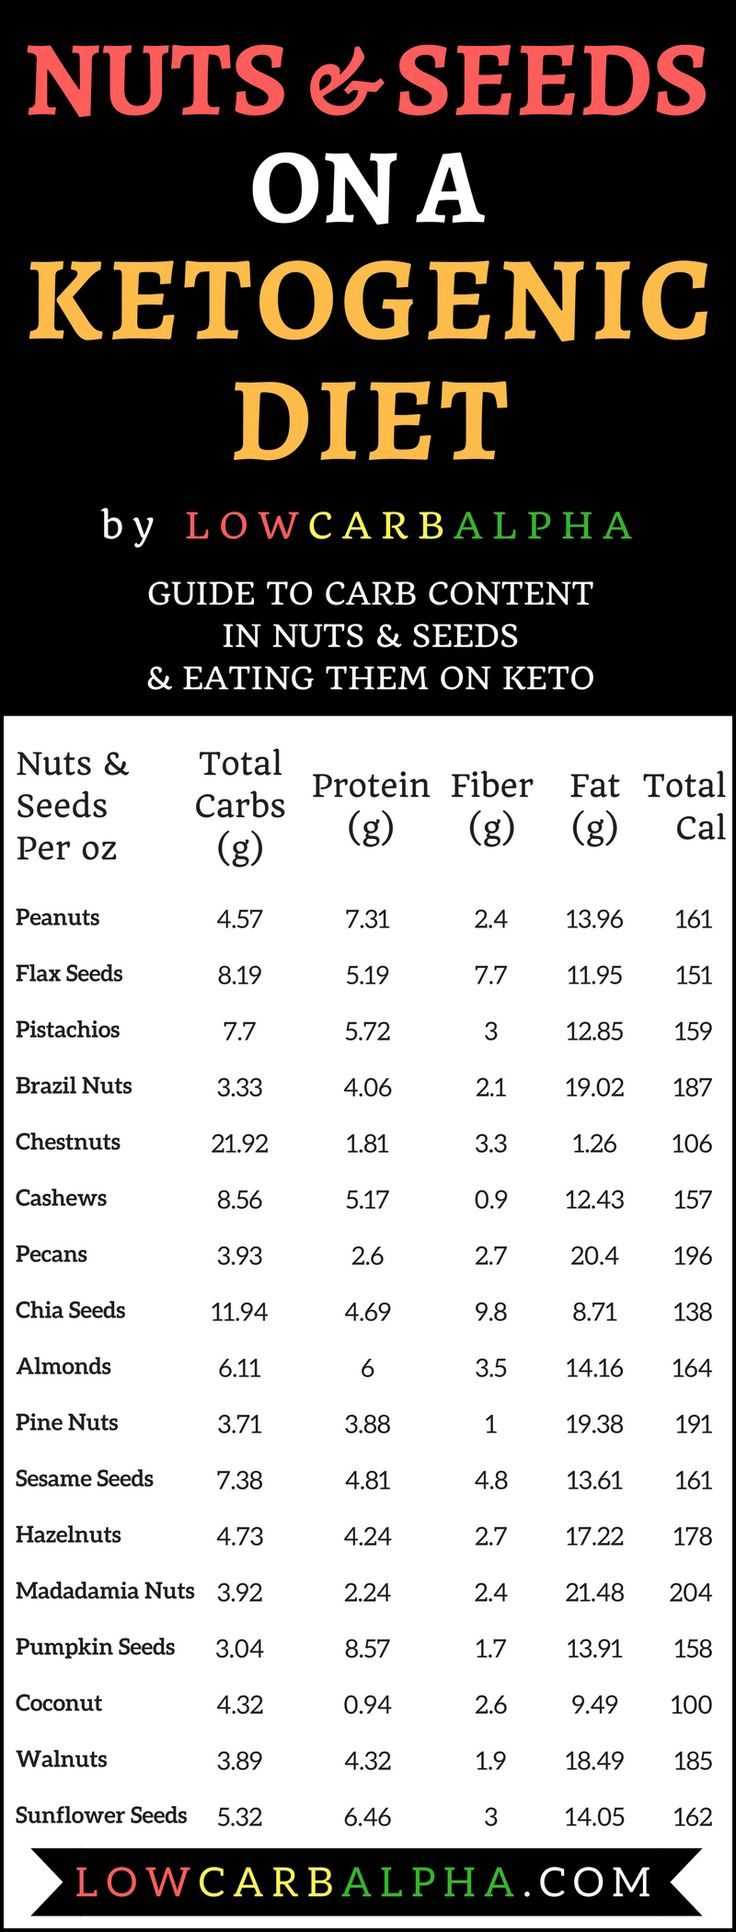 #lowcarbalphas on a low carb ketogenic diet. Guide to carb content in nuts and seeds and eating them on keto. https://lowcarbalpha.com/nuts-seeds-ketogenic-diet/ A favorite for low carb dieters for years. Now accustomed to LCHF dieters but are they helping ketosis or keeping you out of it? #lowcarbalpha